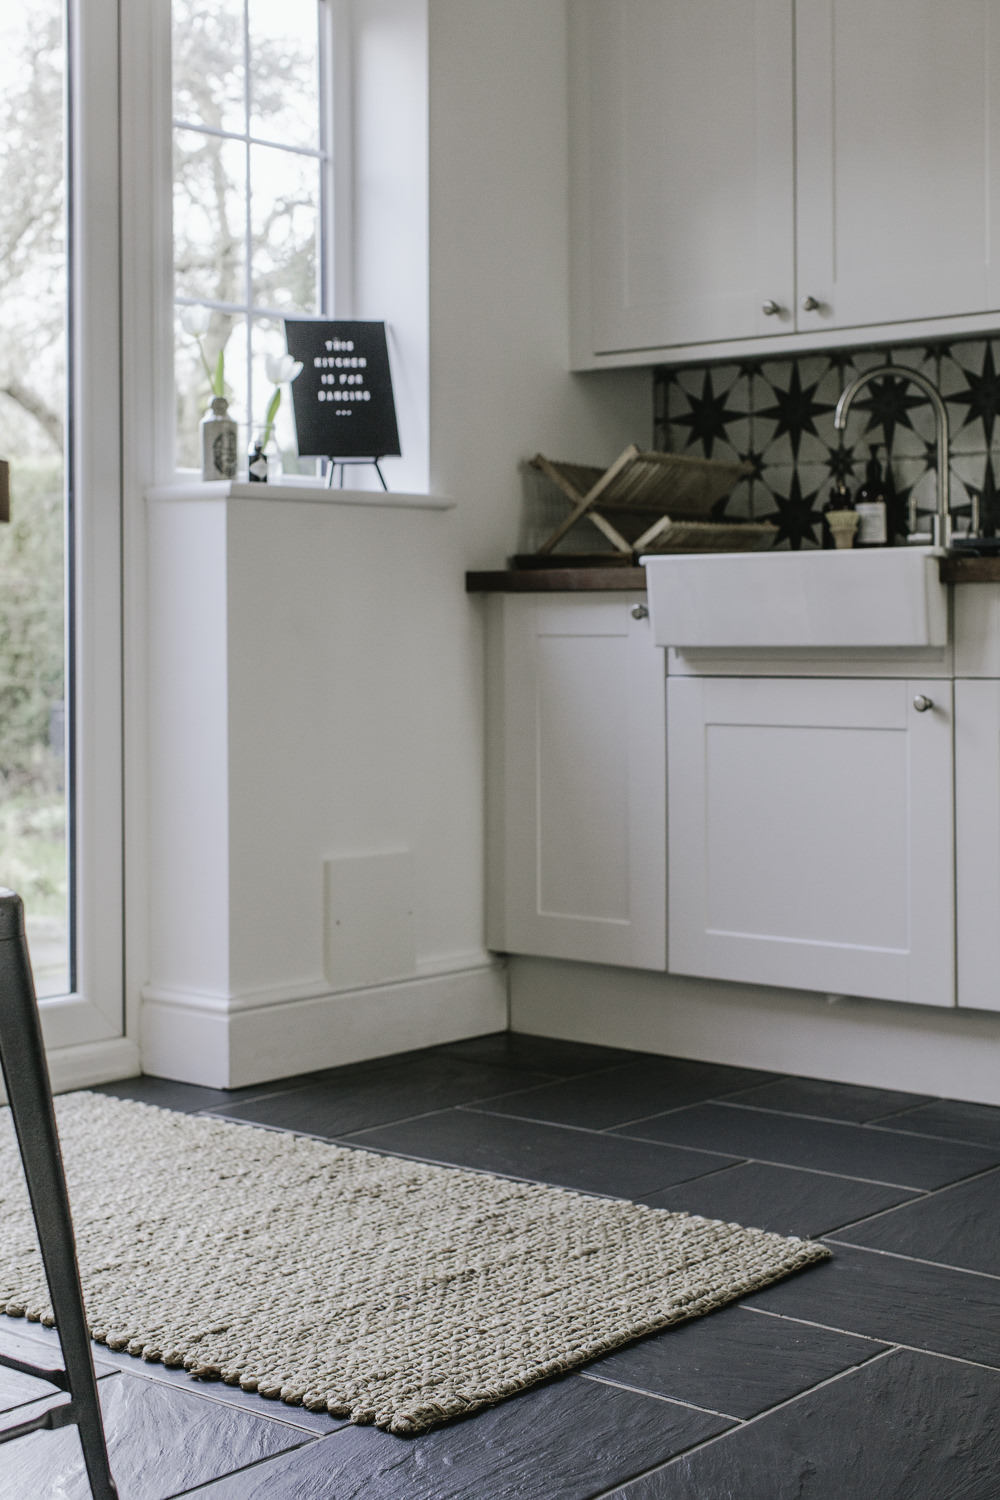 How To Paint Kitchen Cupboards Rock My Style UK Daily Lifestyle Blog